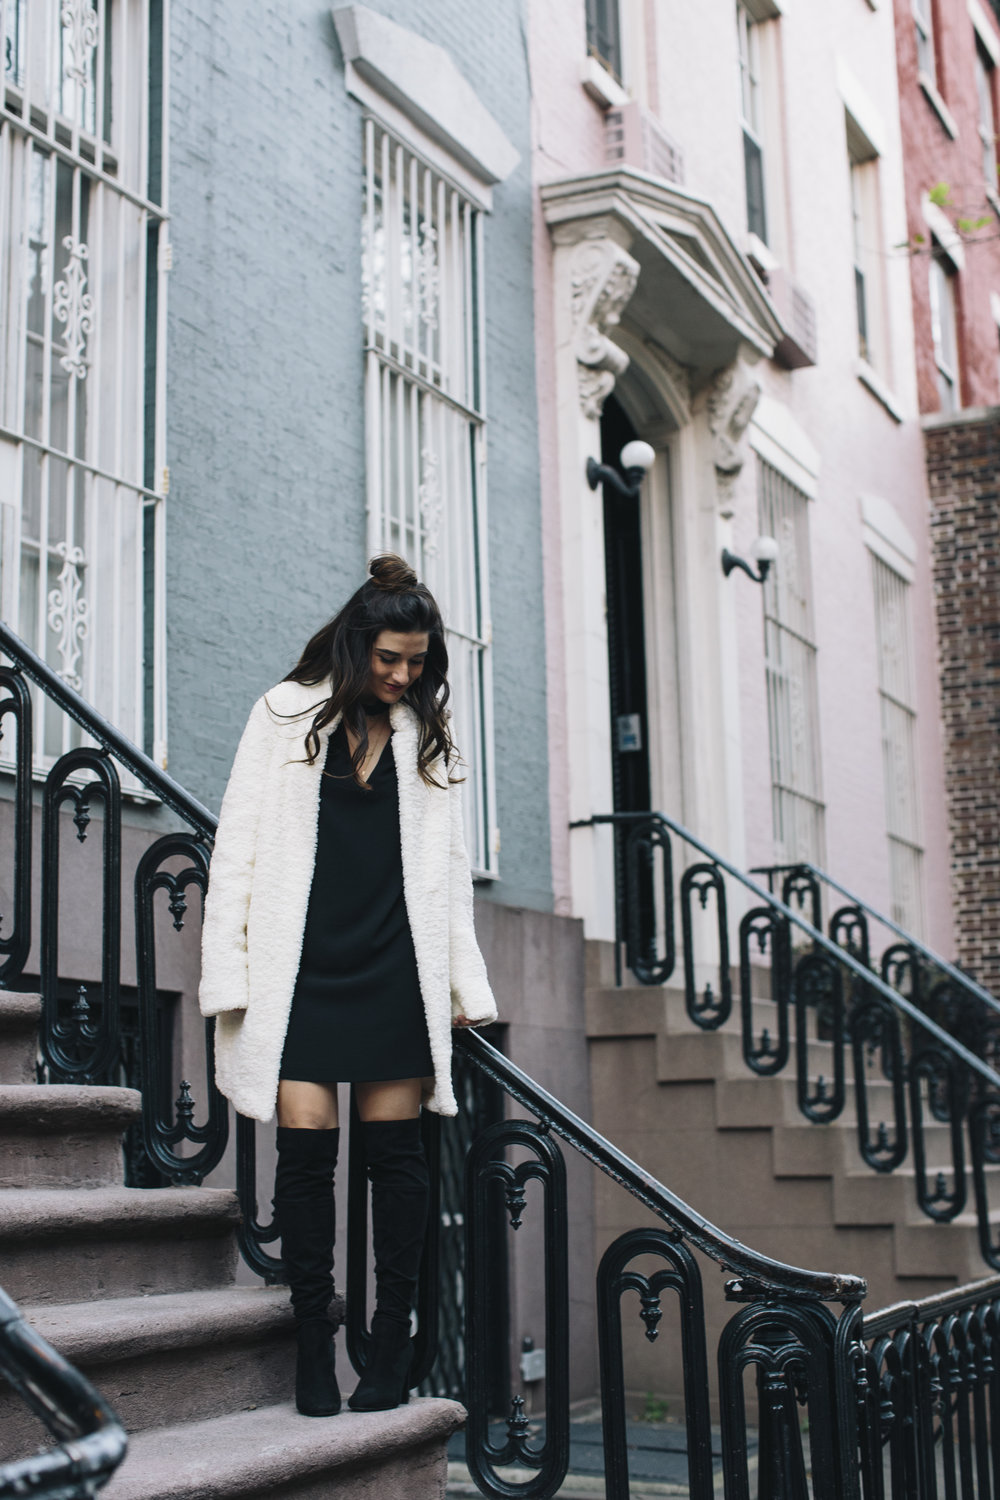 Teddy Bear Coat + OTN Boots How To Avoid Blogger Depression Louboutins & Love Fashion Blog Esther Santer NYC Street Style Blogger Outfit OOTD Trendy Ivanka Trump Nordstrom Bloomingdales Black Dress Zara Pretty Online Shopping Wear Shoes Bun Girl Women.jpg